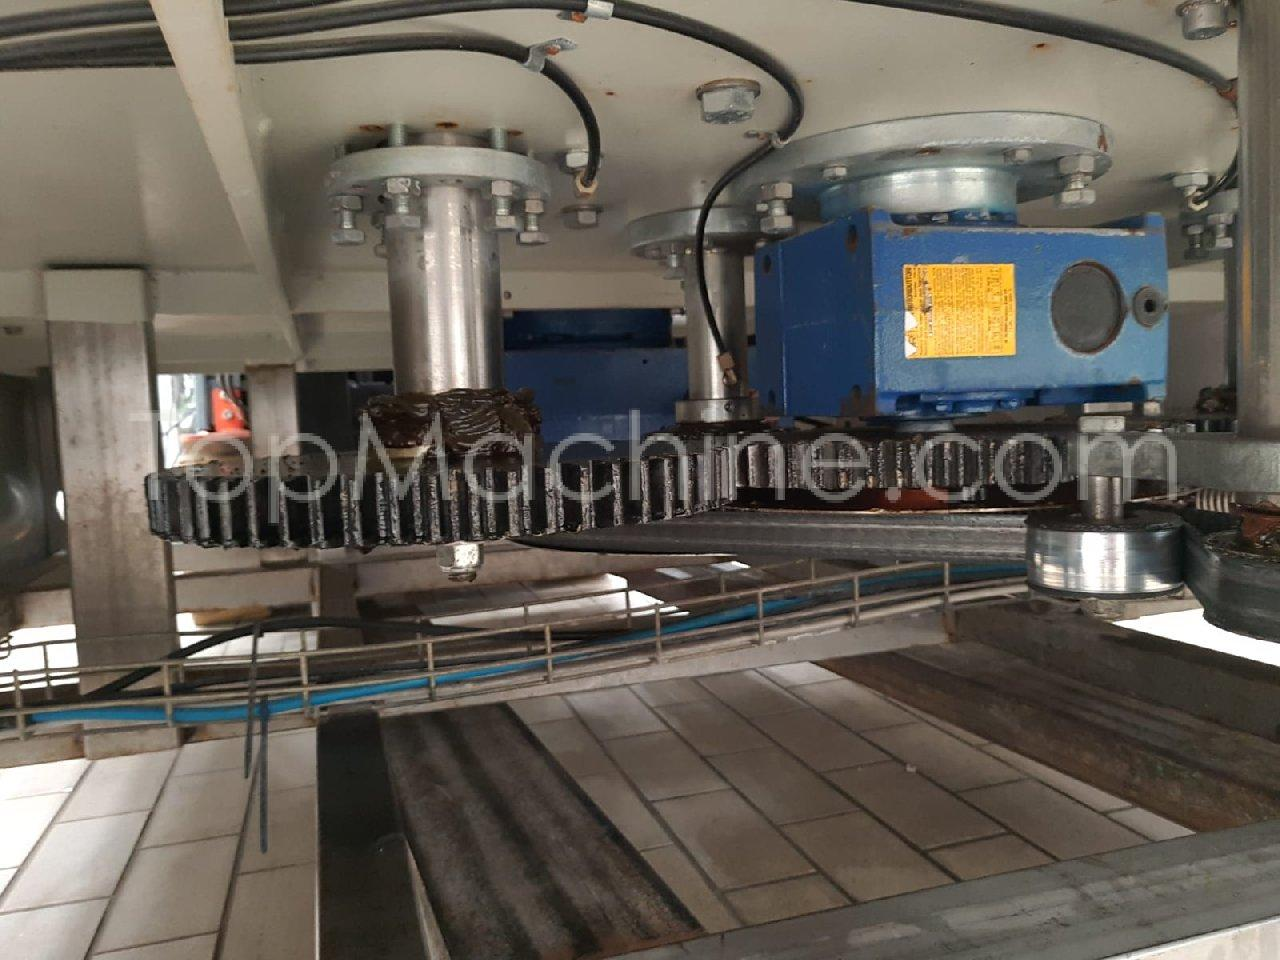 Used Procomac Rotostar Food Packing, Filling in Glass